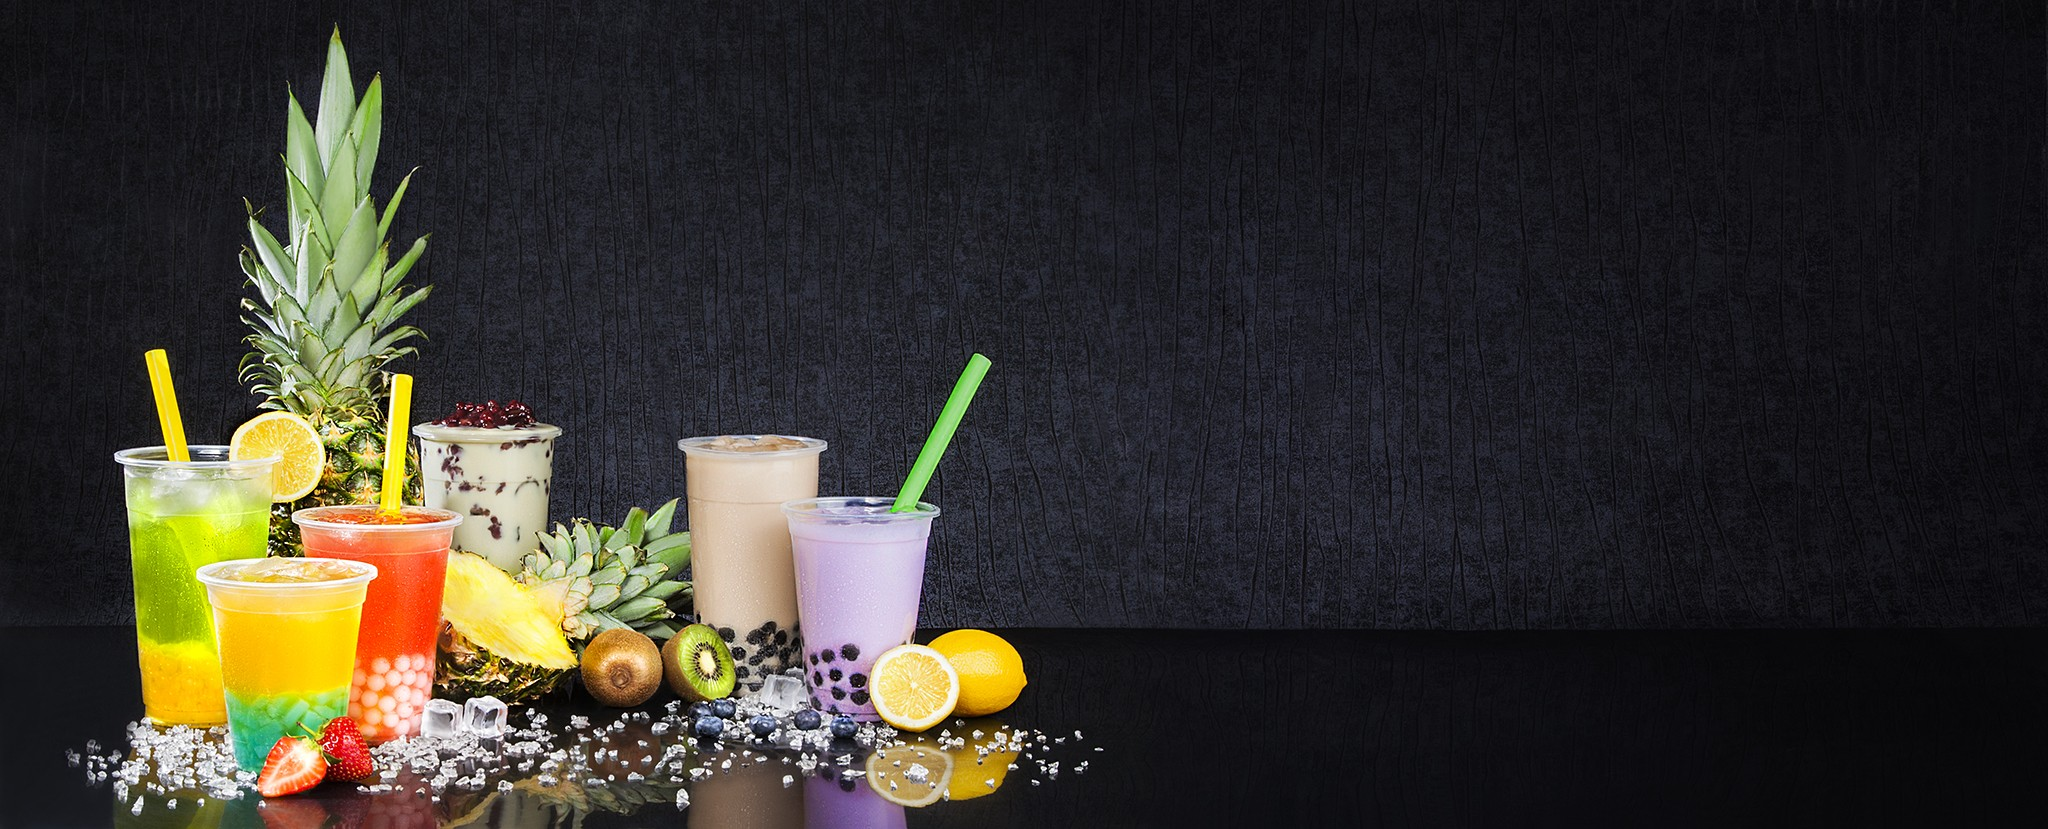 Boba Box Ltd |Premier UK and European Bubble Tea Supplier